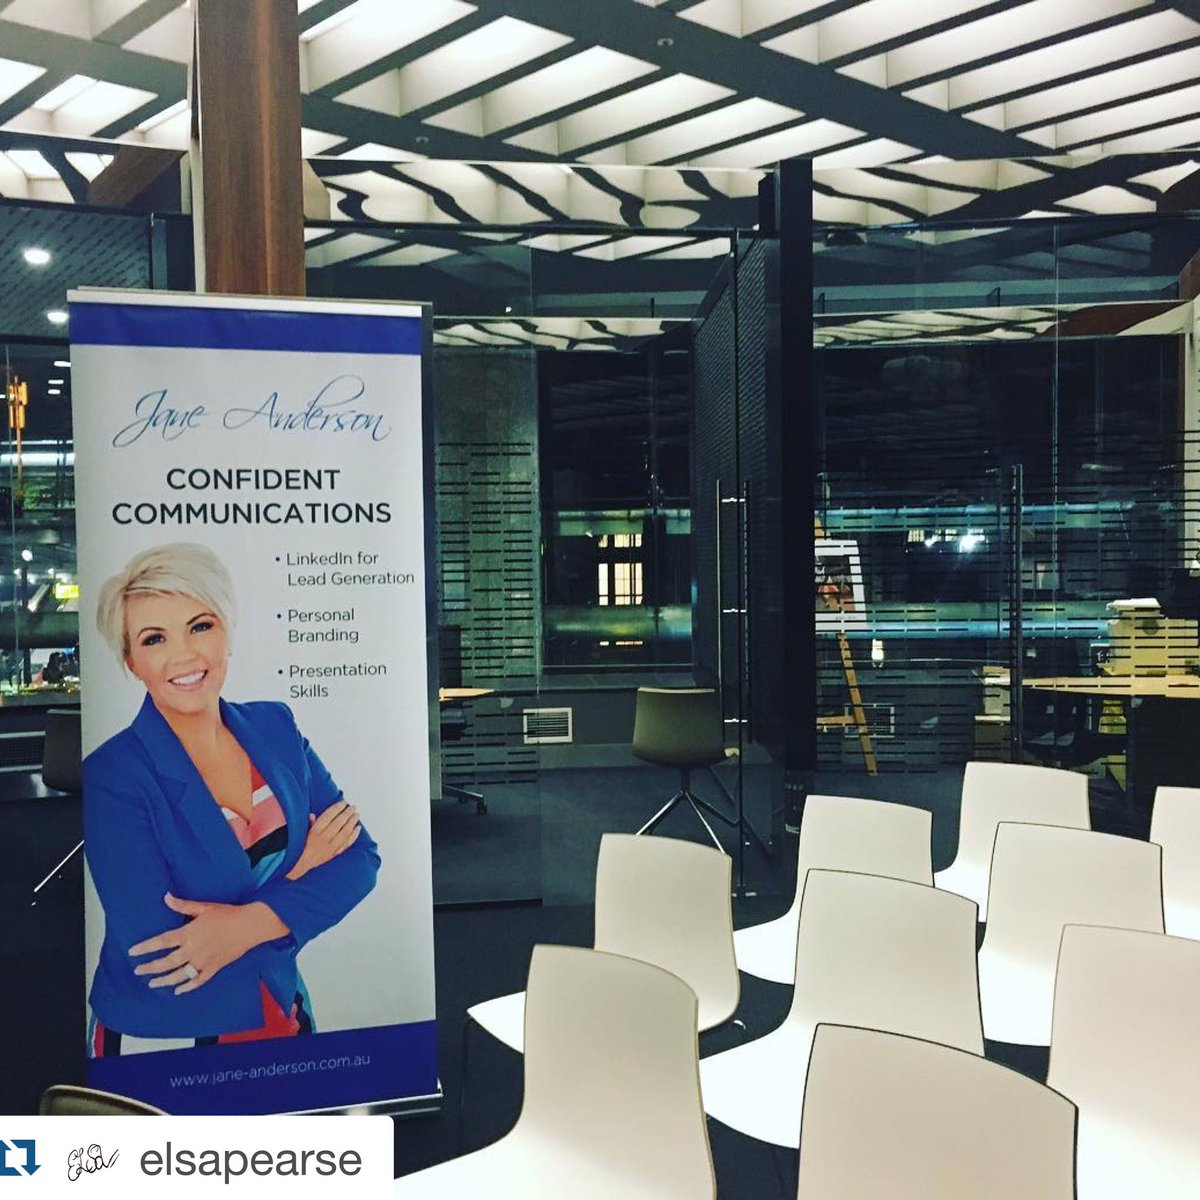 Jane Anderson On Twitter Thank You To Brisbane Junior Chamber Of Commerce Talking All Things PersonalBranding And Linkedin Last Night